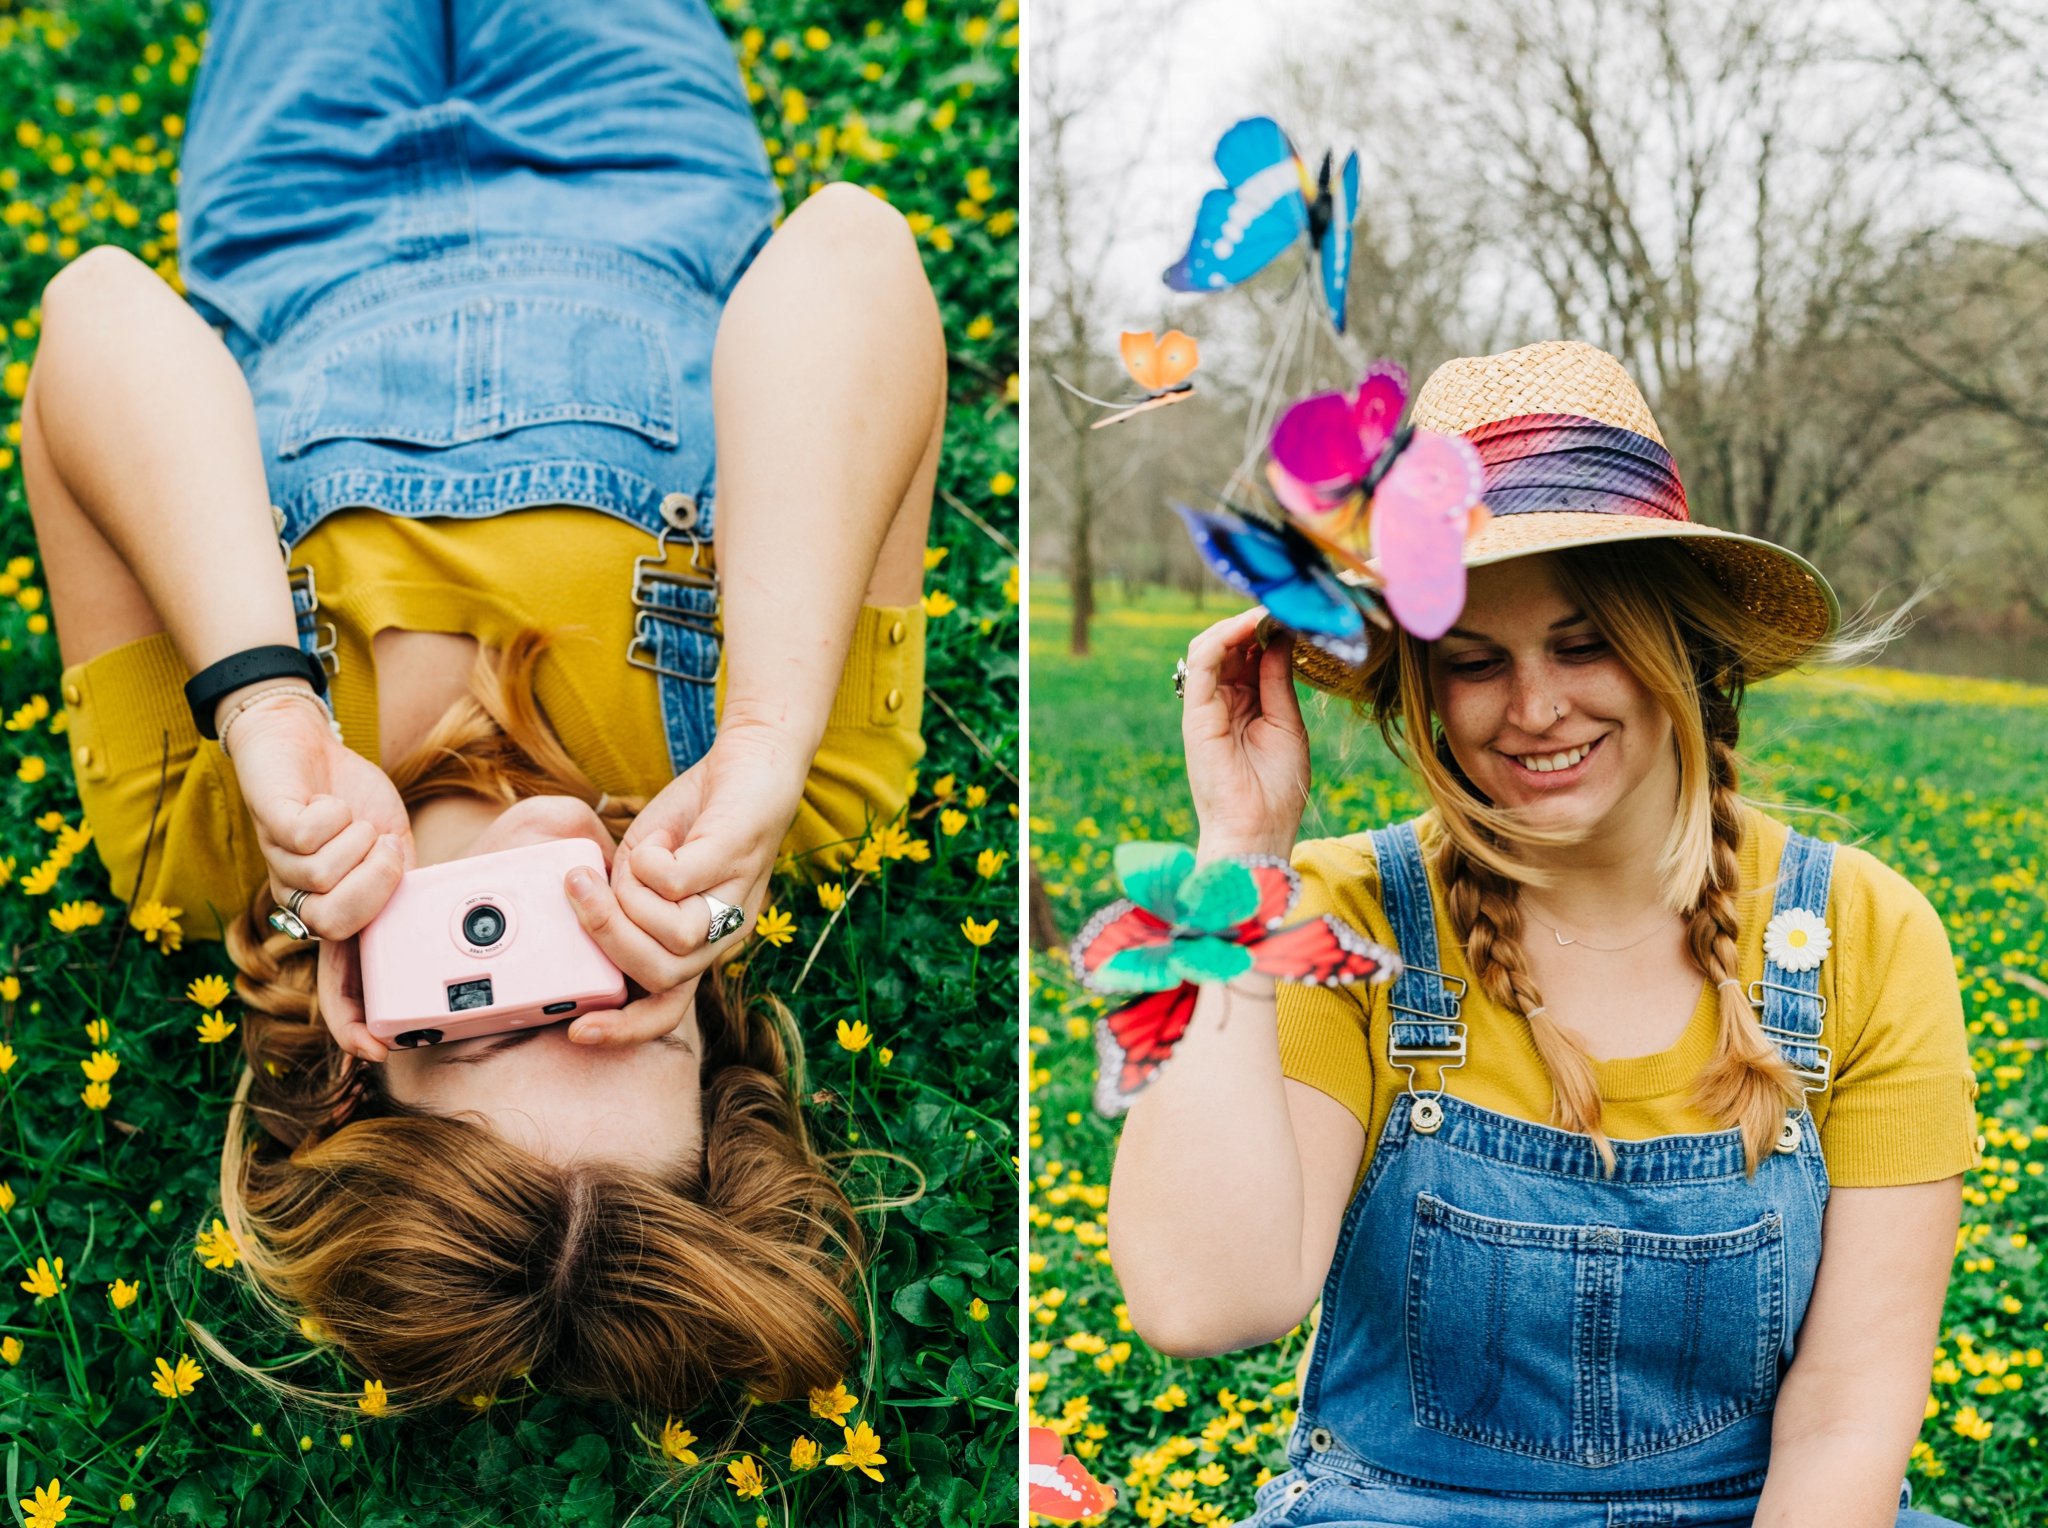 Emily Grace Photography, Lancaster PA Wedding Photographer for Adventurous Couples, Lancaster County Central Park Portrait Session, Spring Flowers in Bloom Photo Shoot